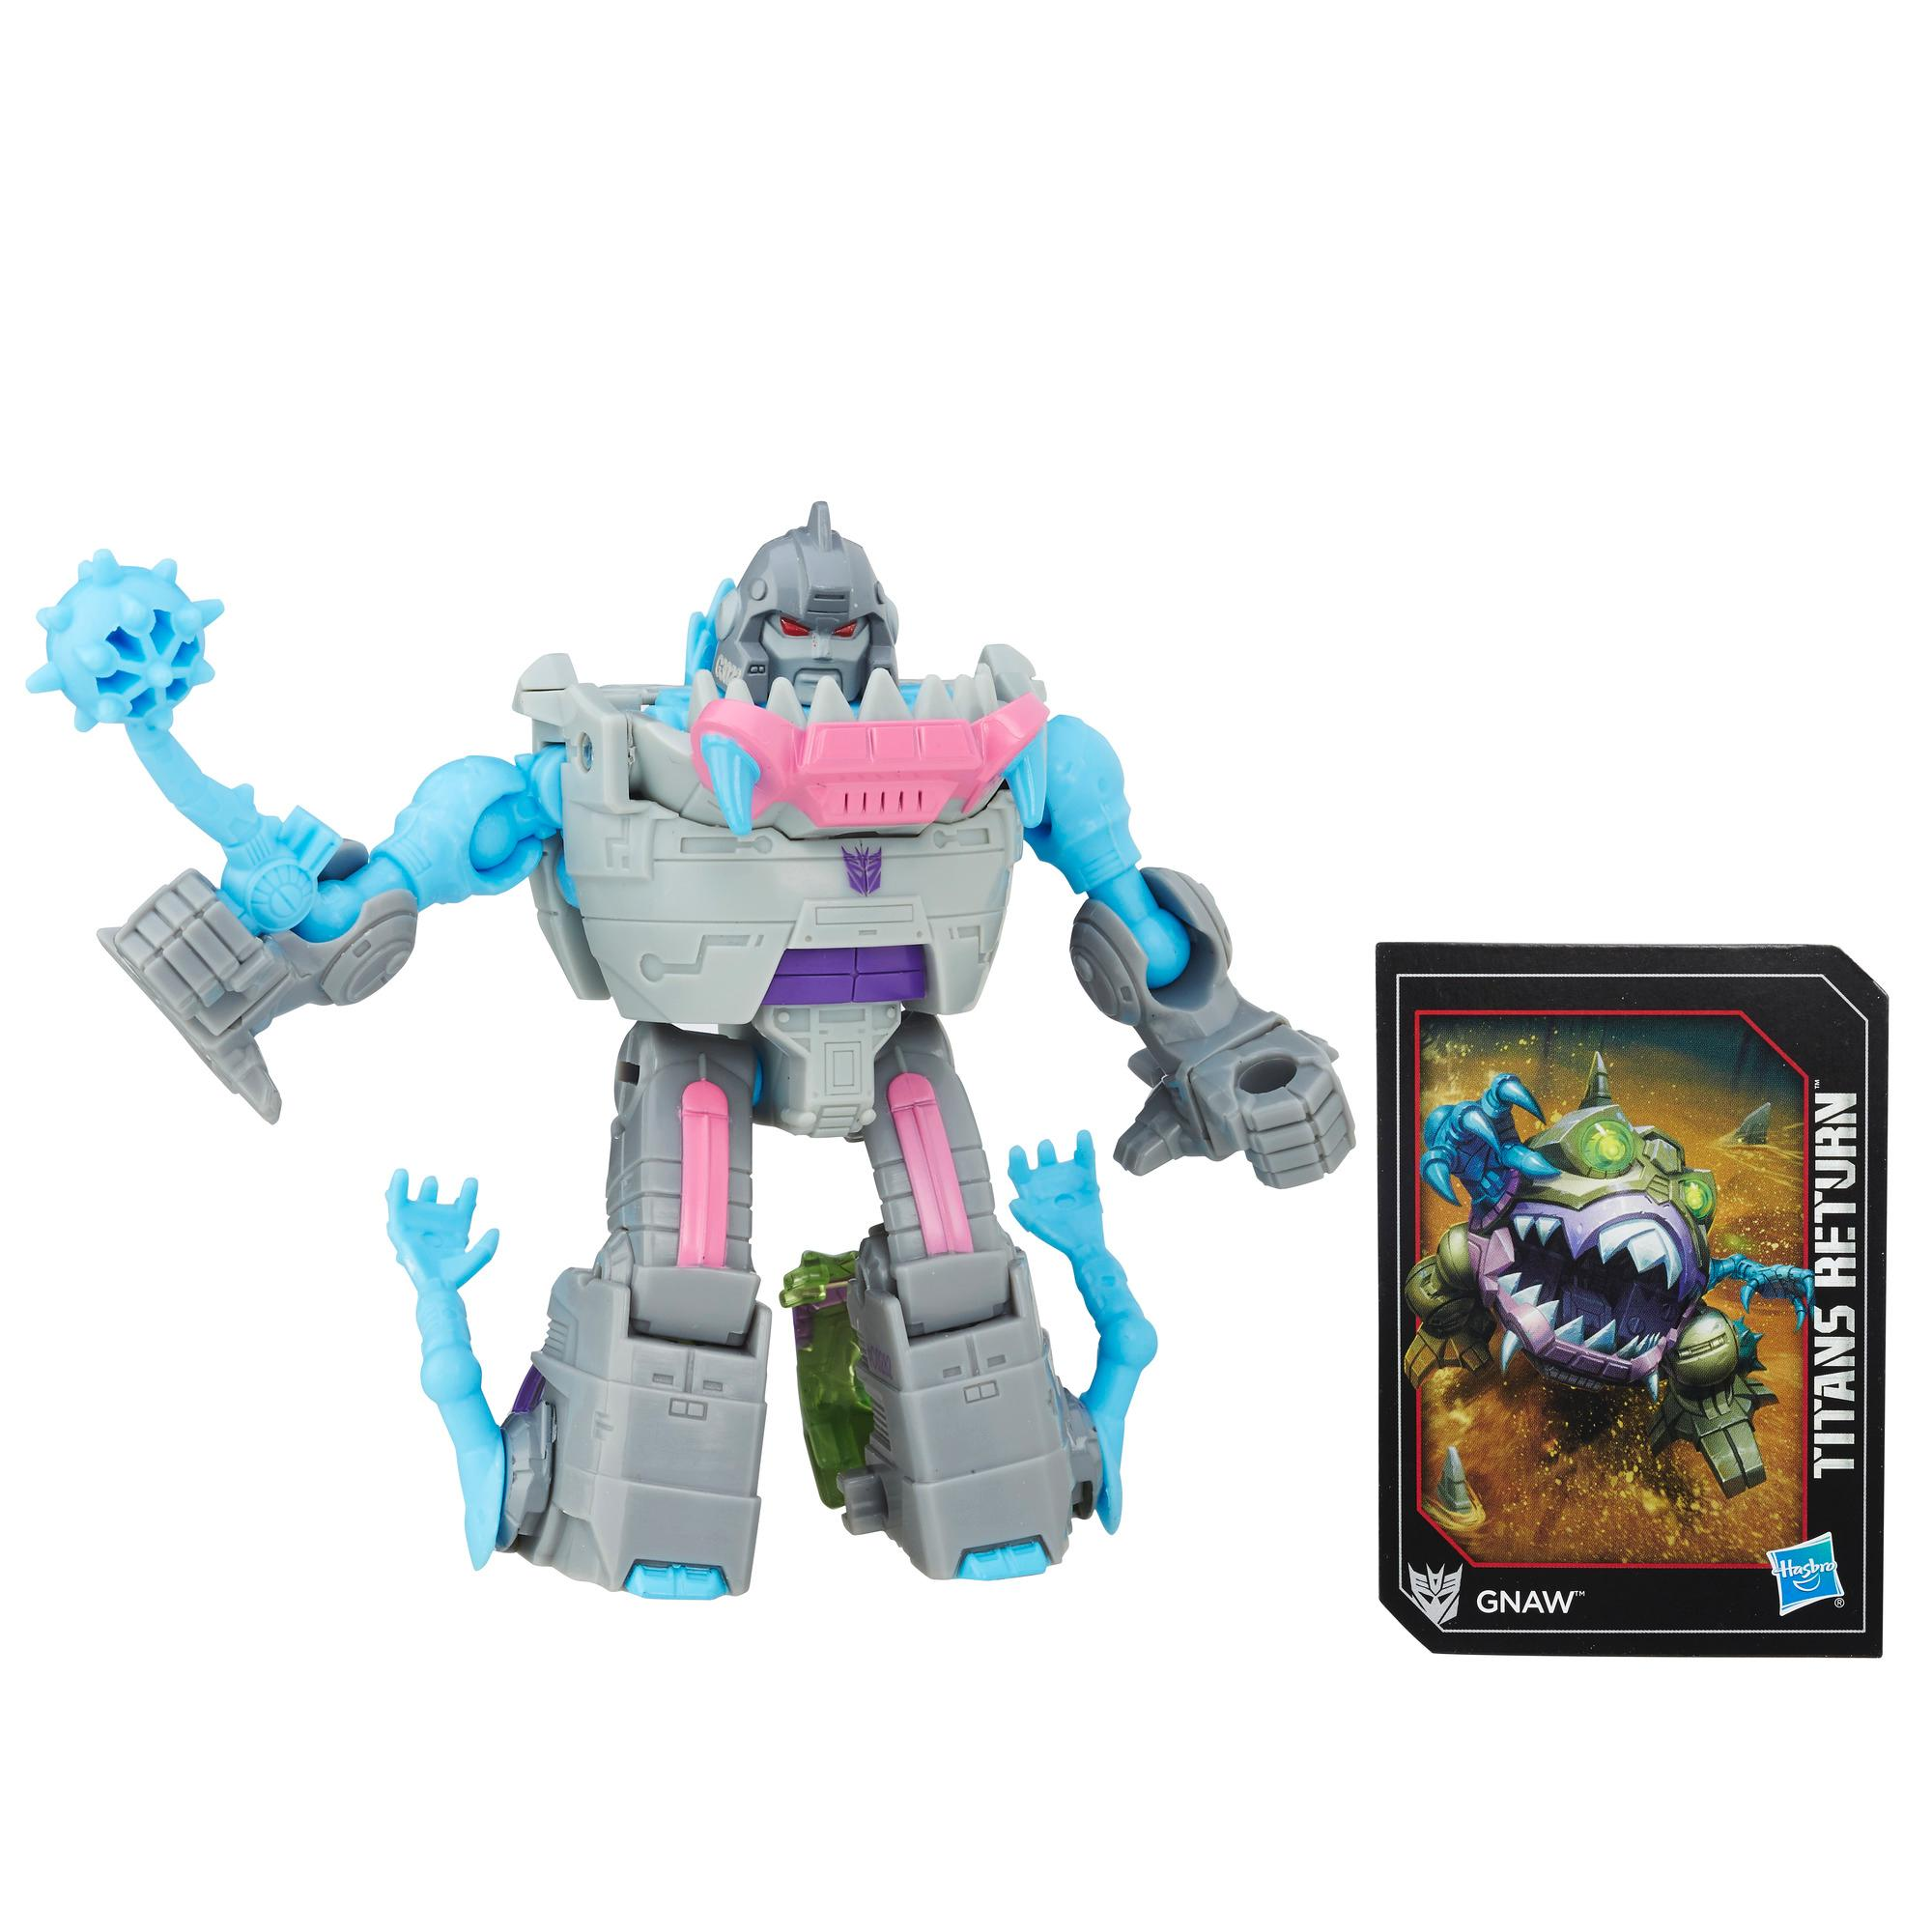 Transformers Generations Titans Return - Gnaw classe légendes